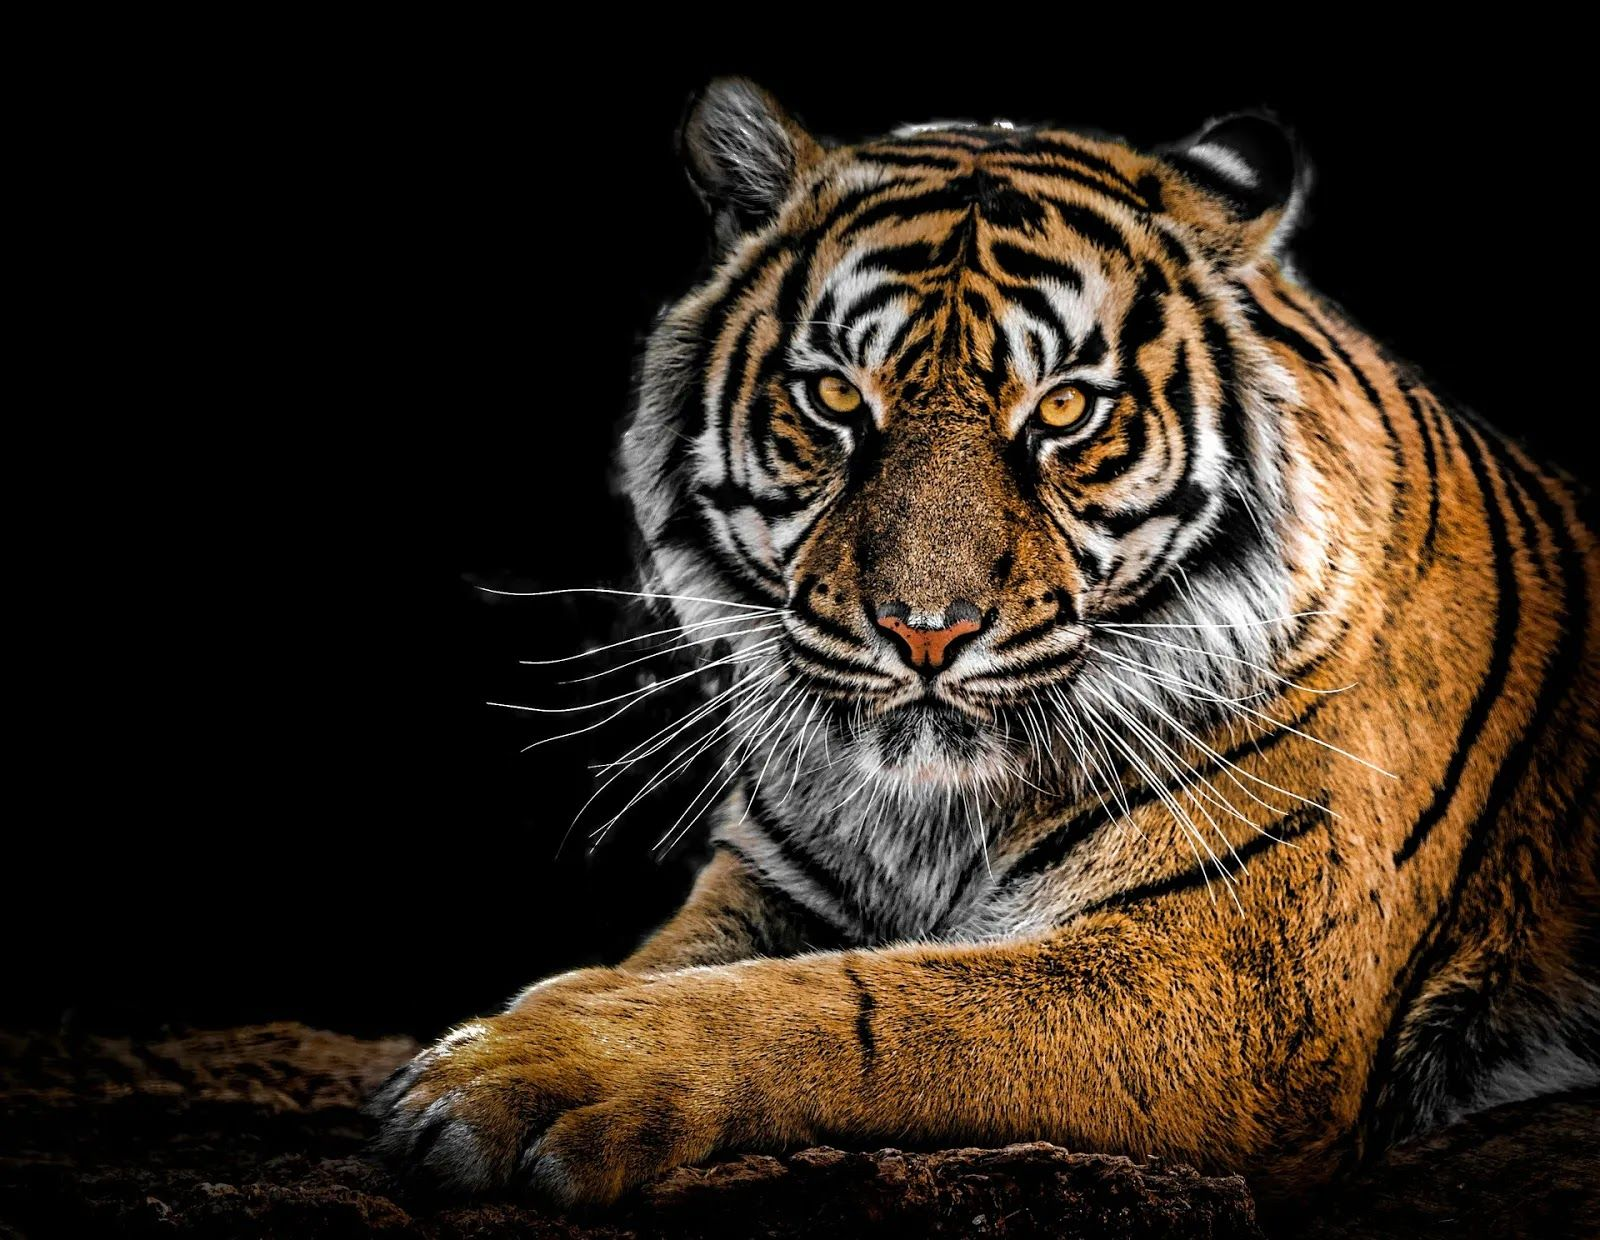 خلفيات حيوانات مفترسة 2020 Tiger Images Animal Photography Cat Care